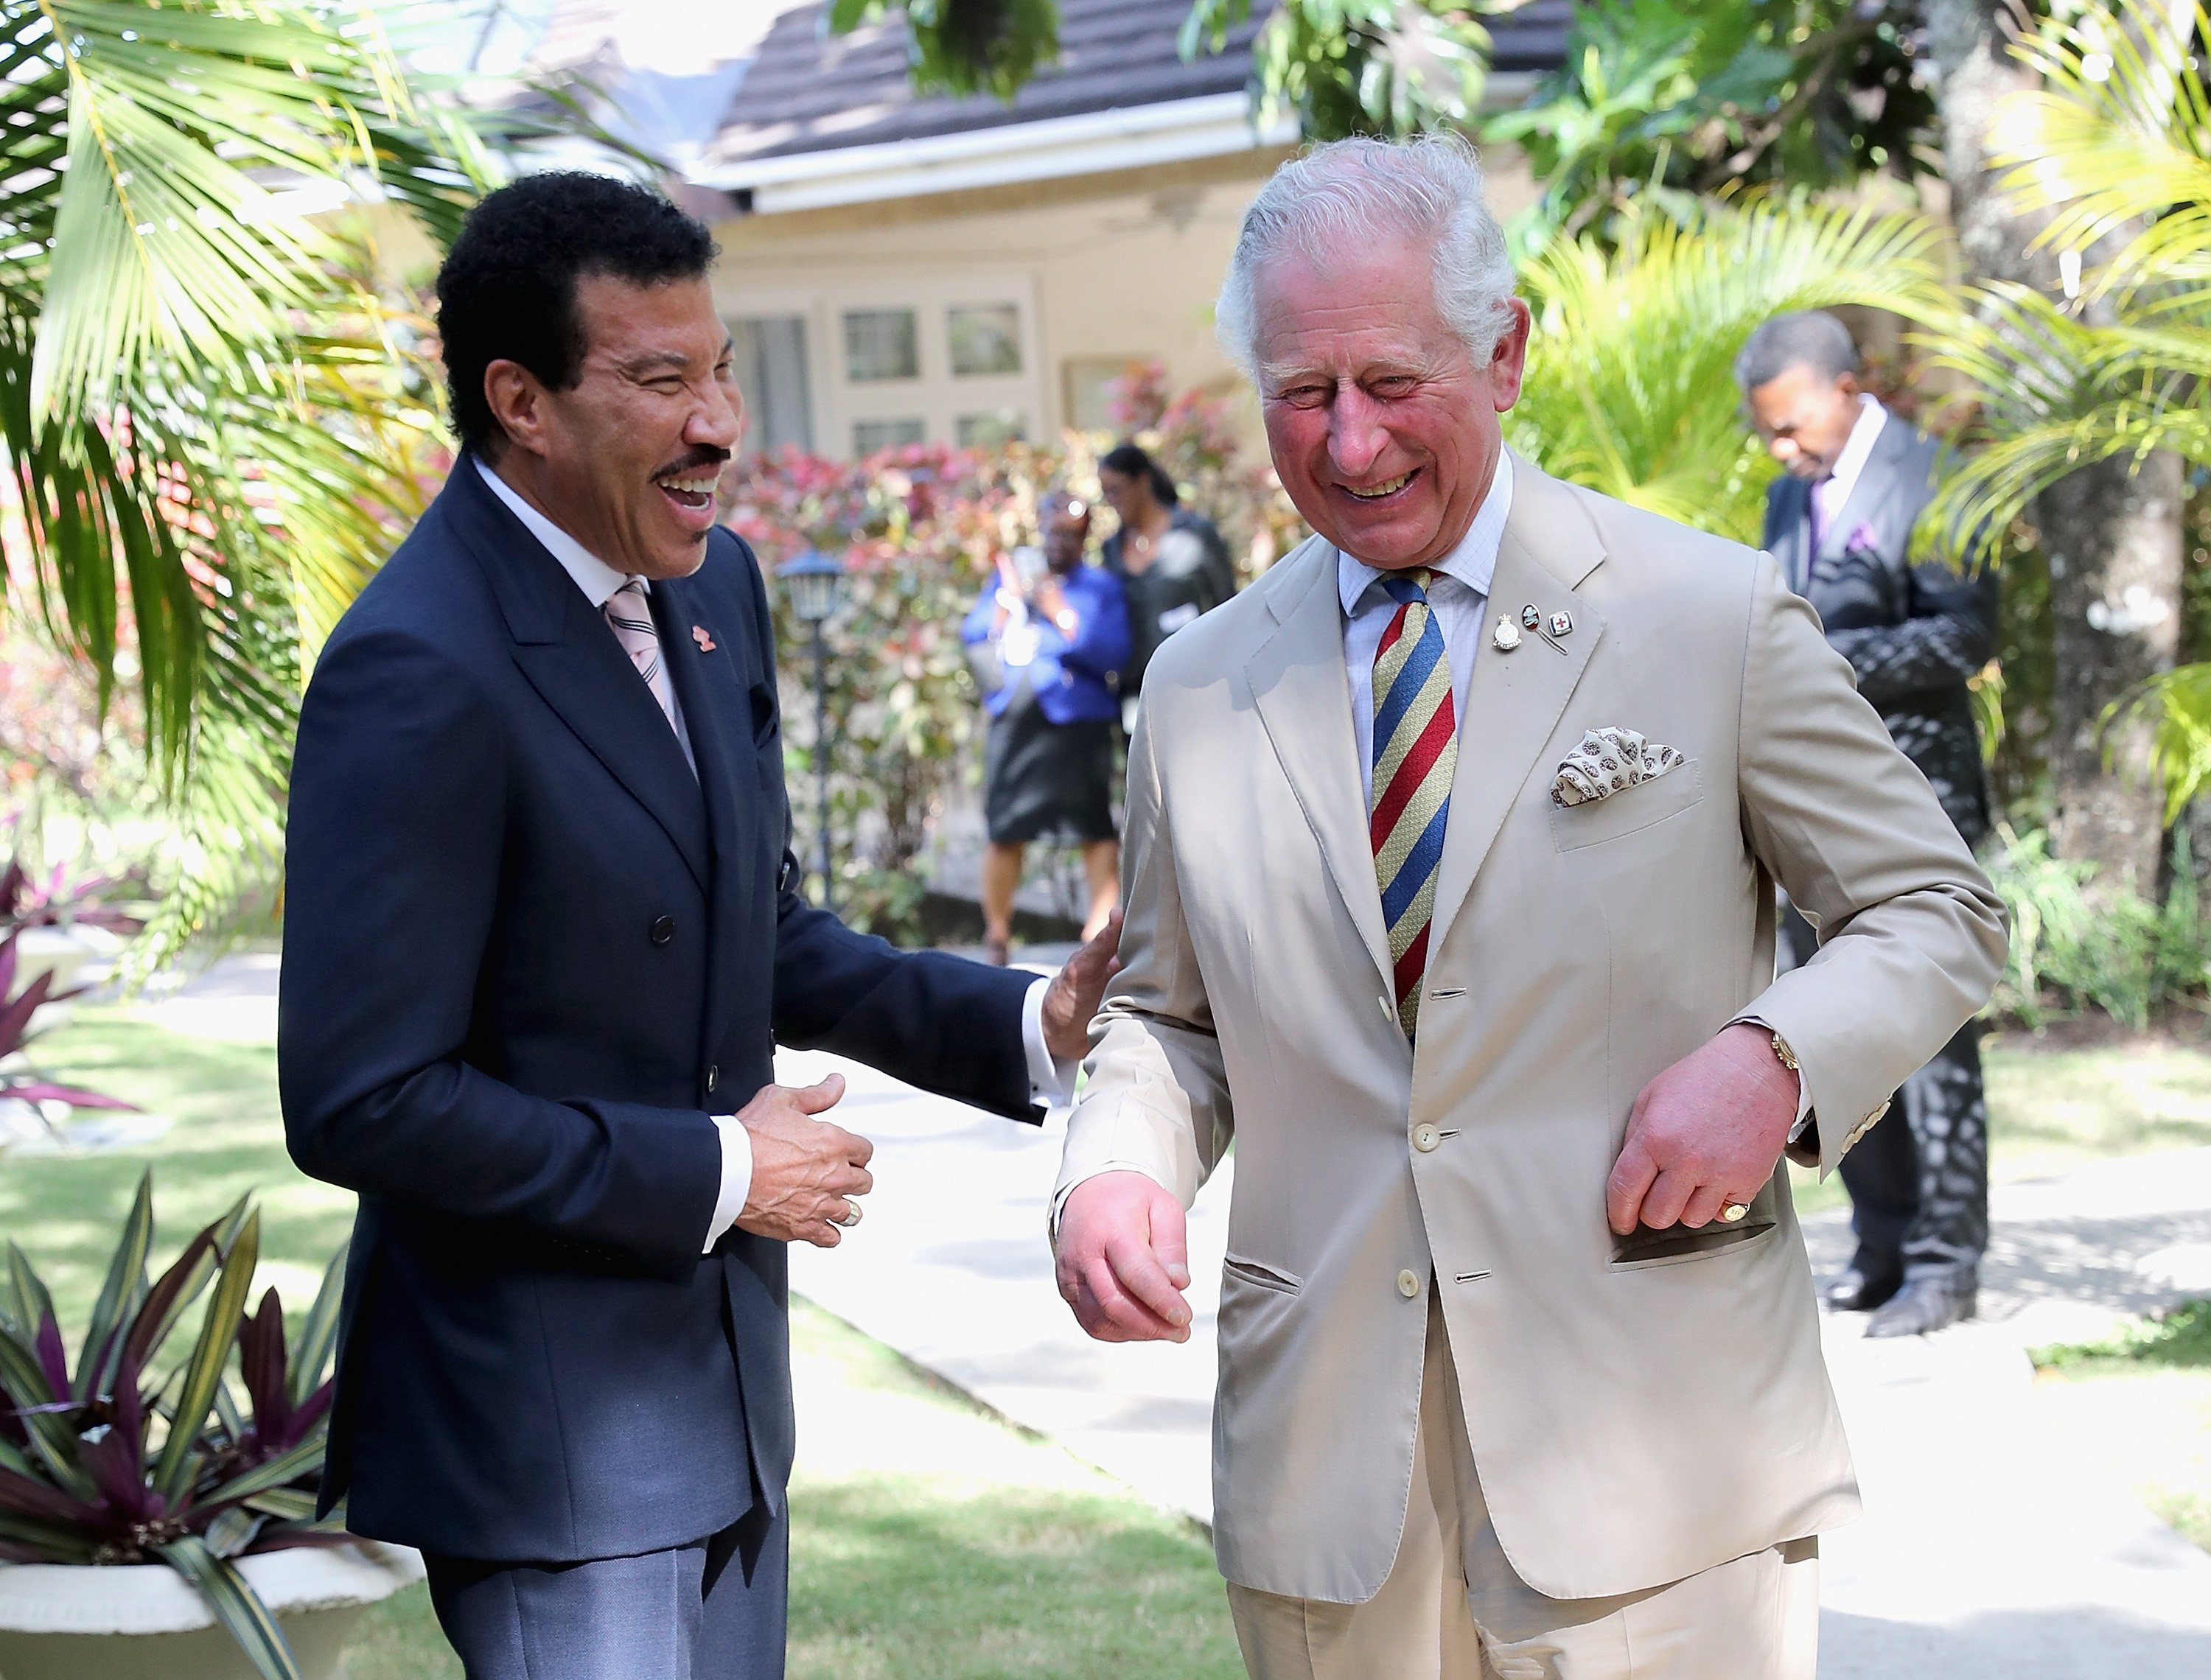 Lionel Richie and Prince Charles, Prince of Wales attend a Prince's Trust International Reception at the Coral Reef Club Hotel on March 19, 2019 in Folkestone, Barbados.